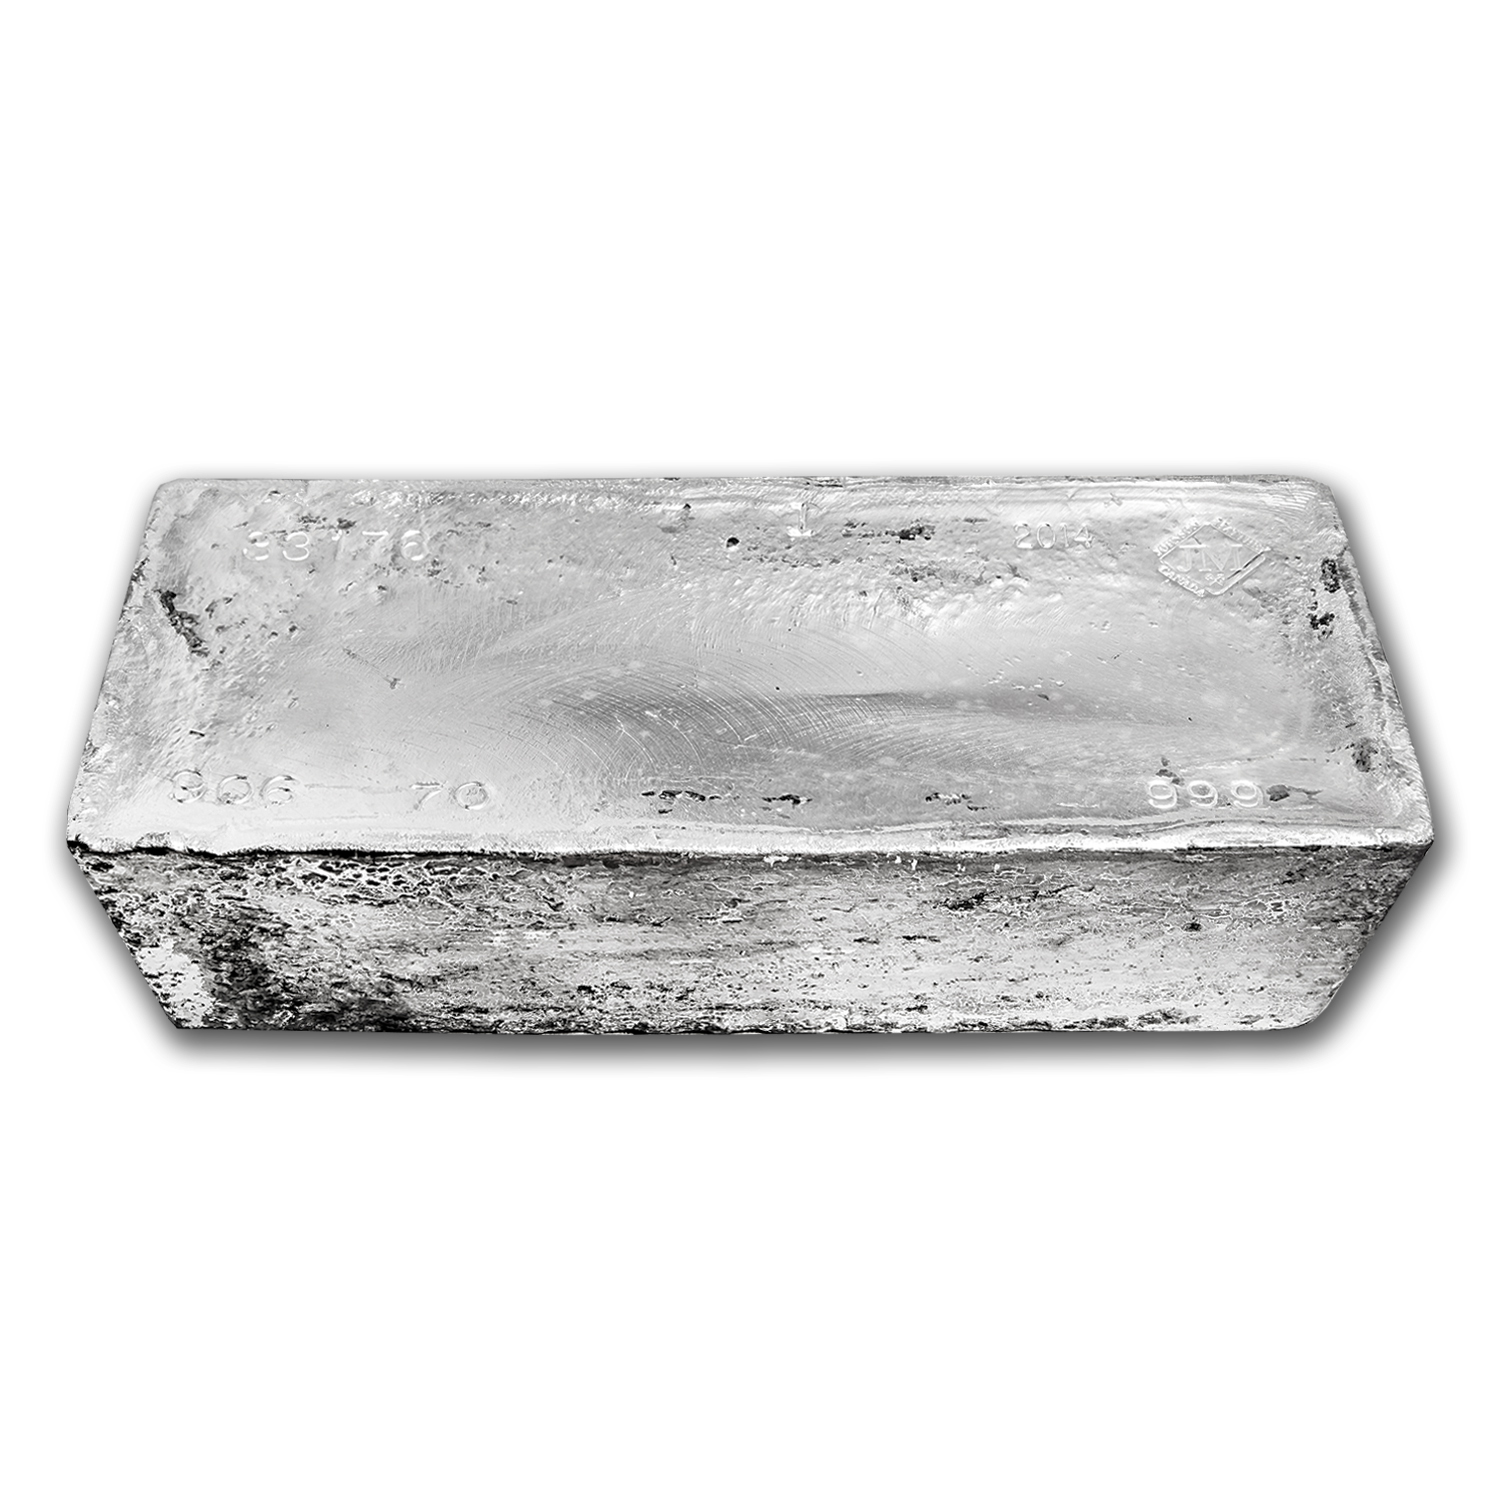 983.70 oz Silver Bars - Johnson Matthey